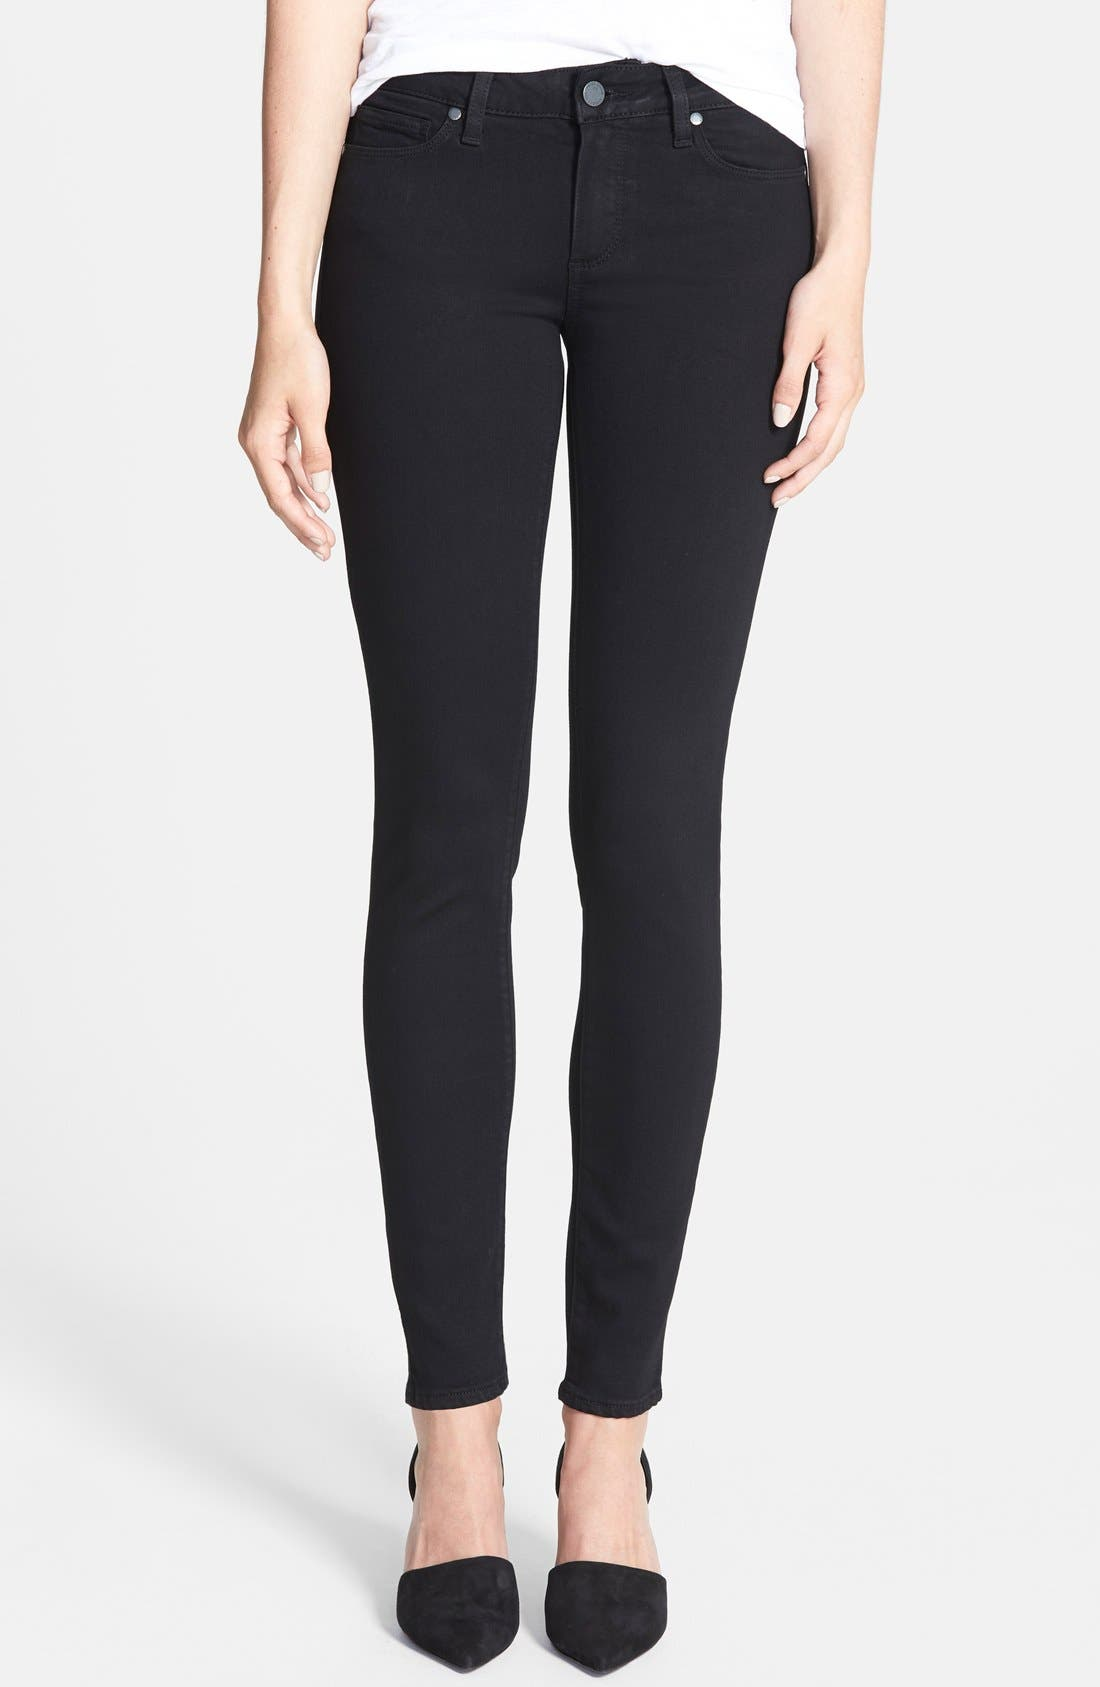 Women's Jeans & Denim | Nordstrom